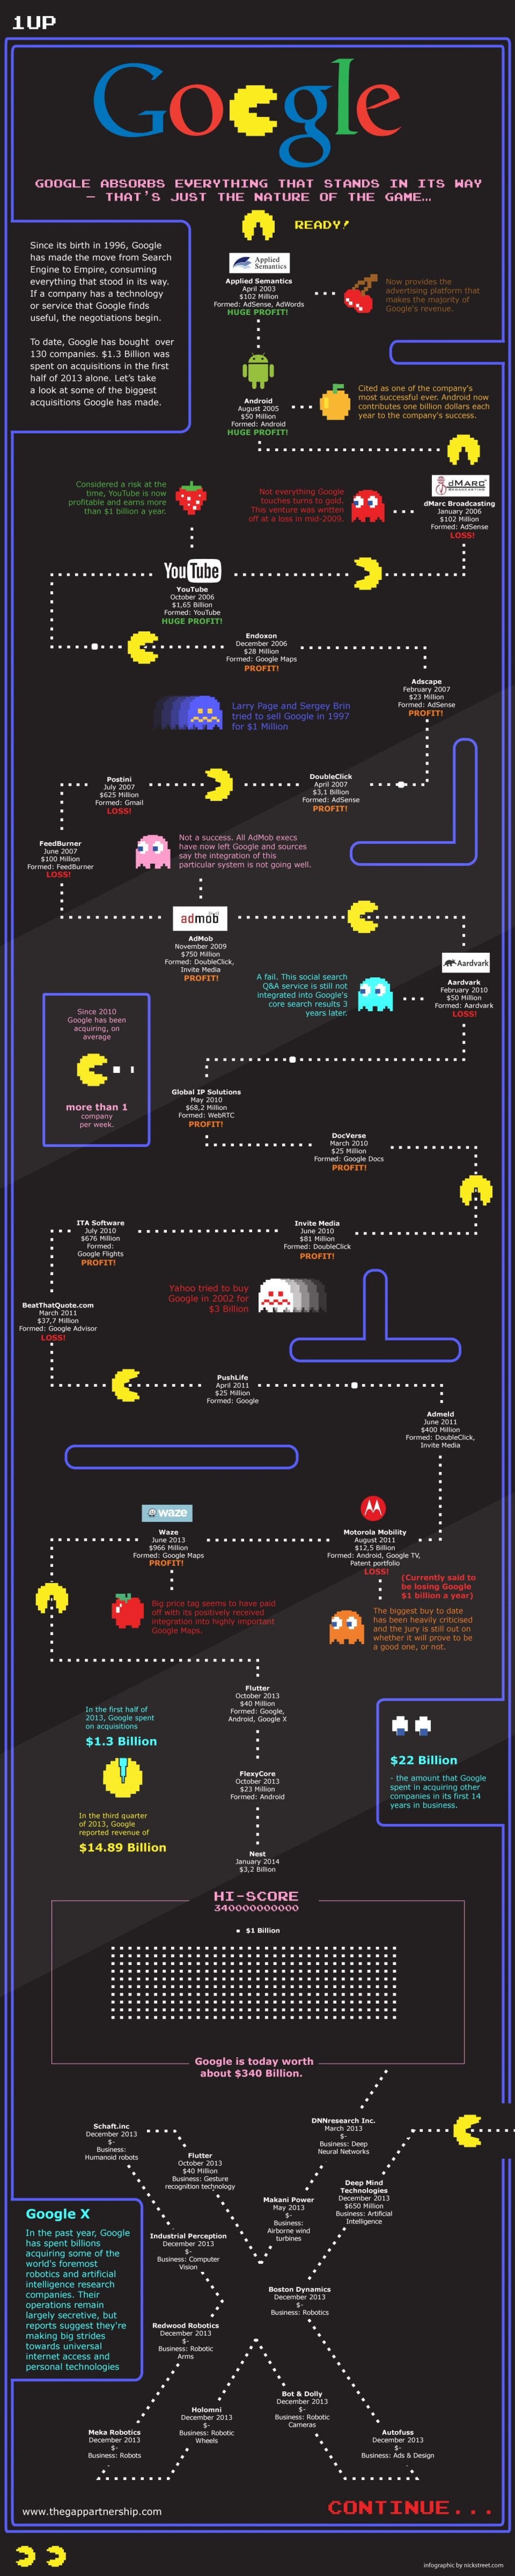 Google's Appetite: The Companies Google has Acquired Infographic